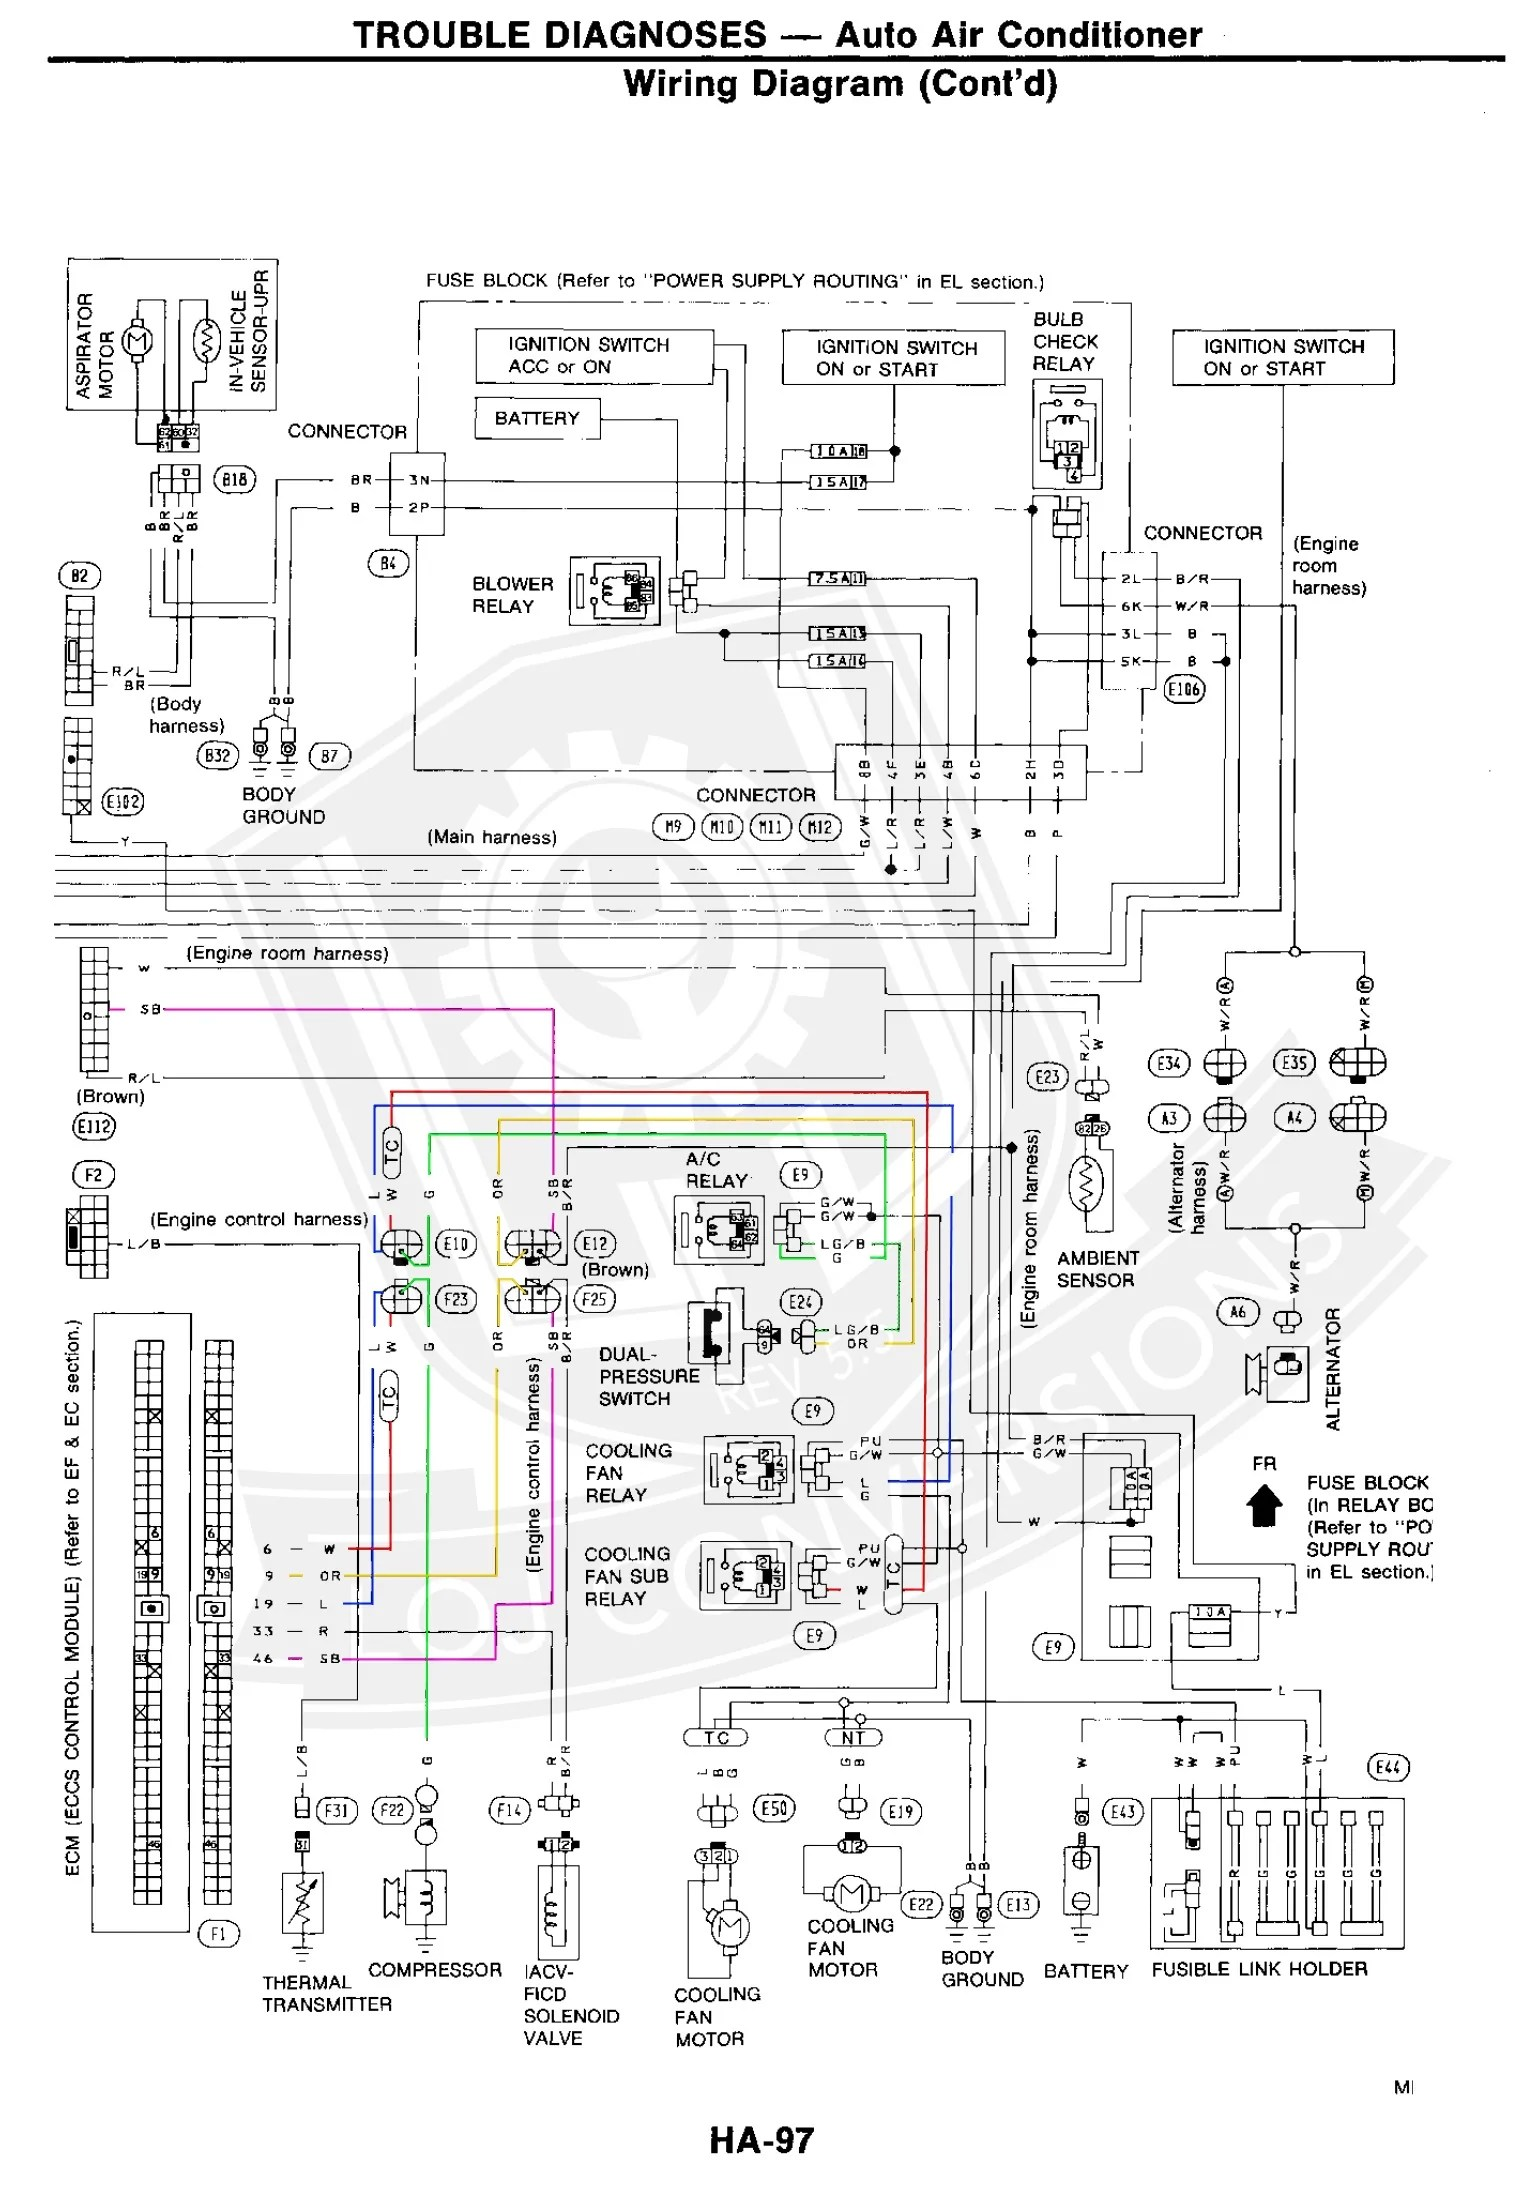 300ZX_AC_Wiring_Engine_Swap_02 300zx wiring diagram dolgular com  at aneh.co